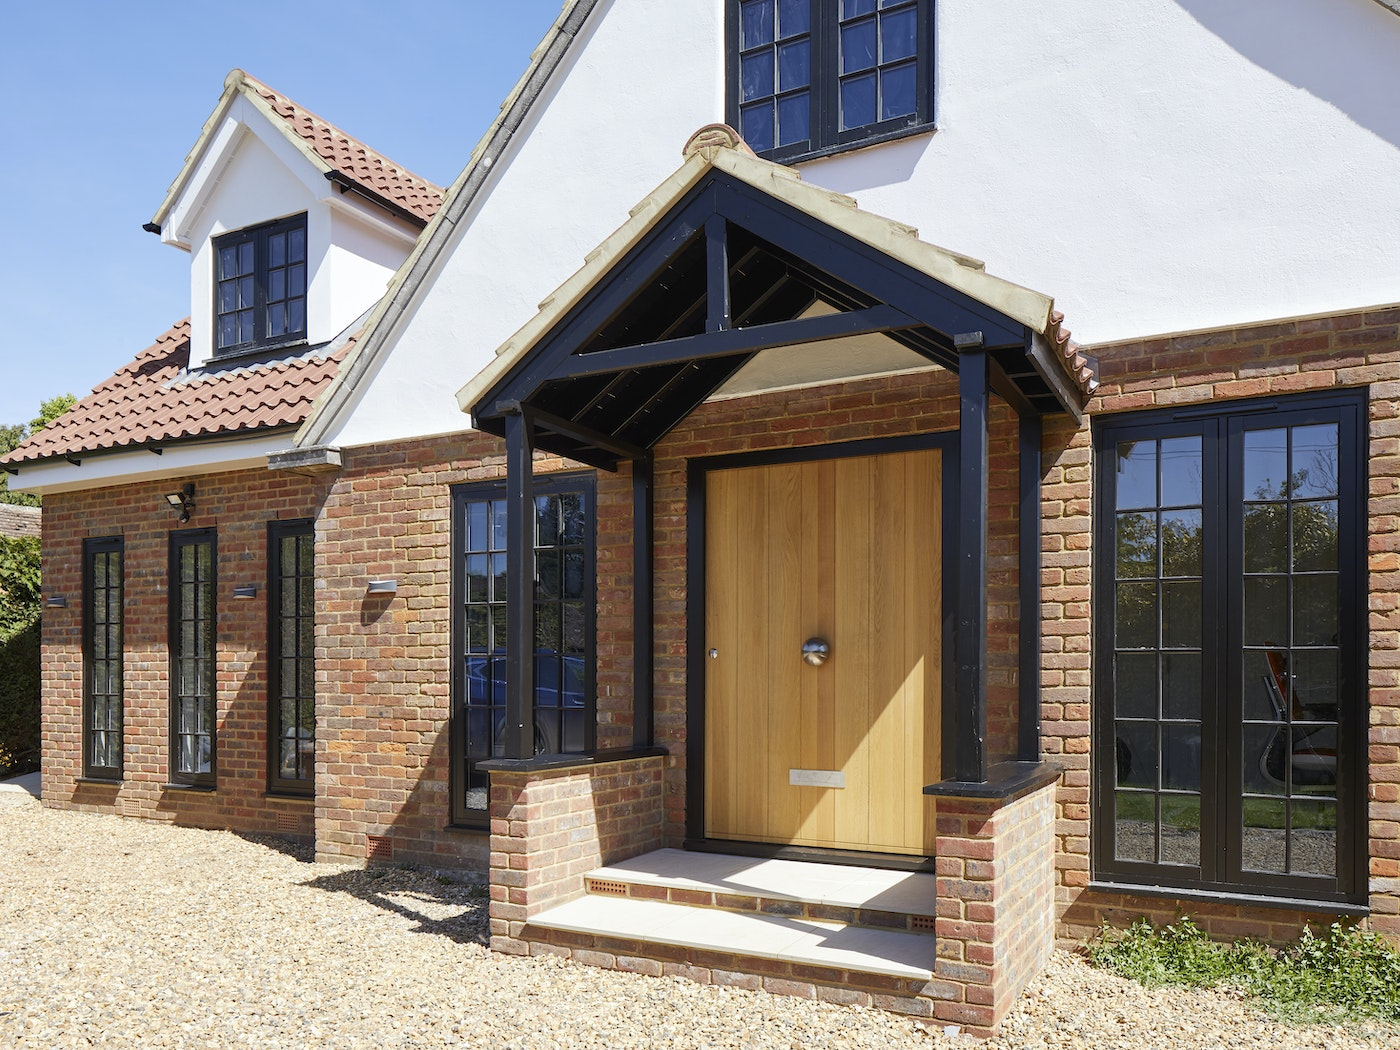 A new front door can add value to your home